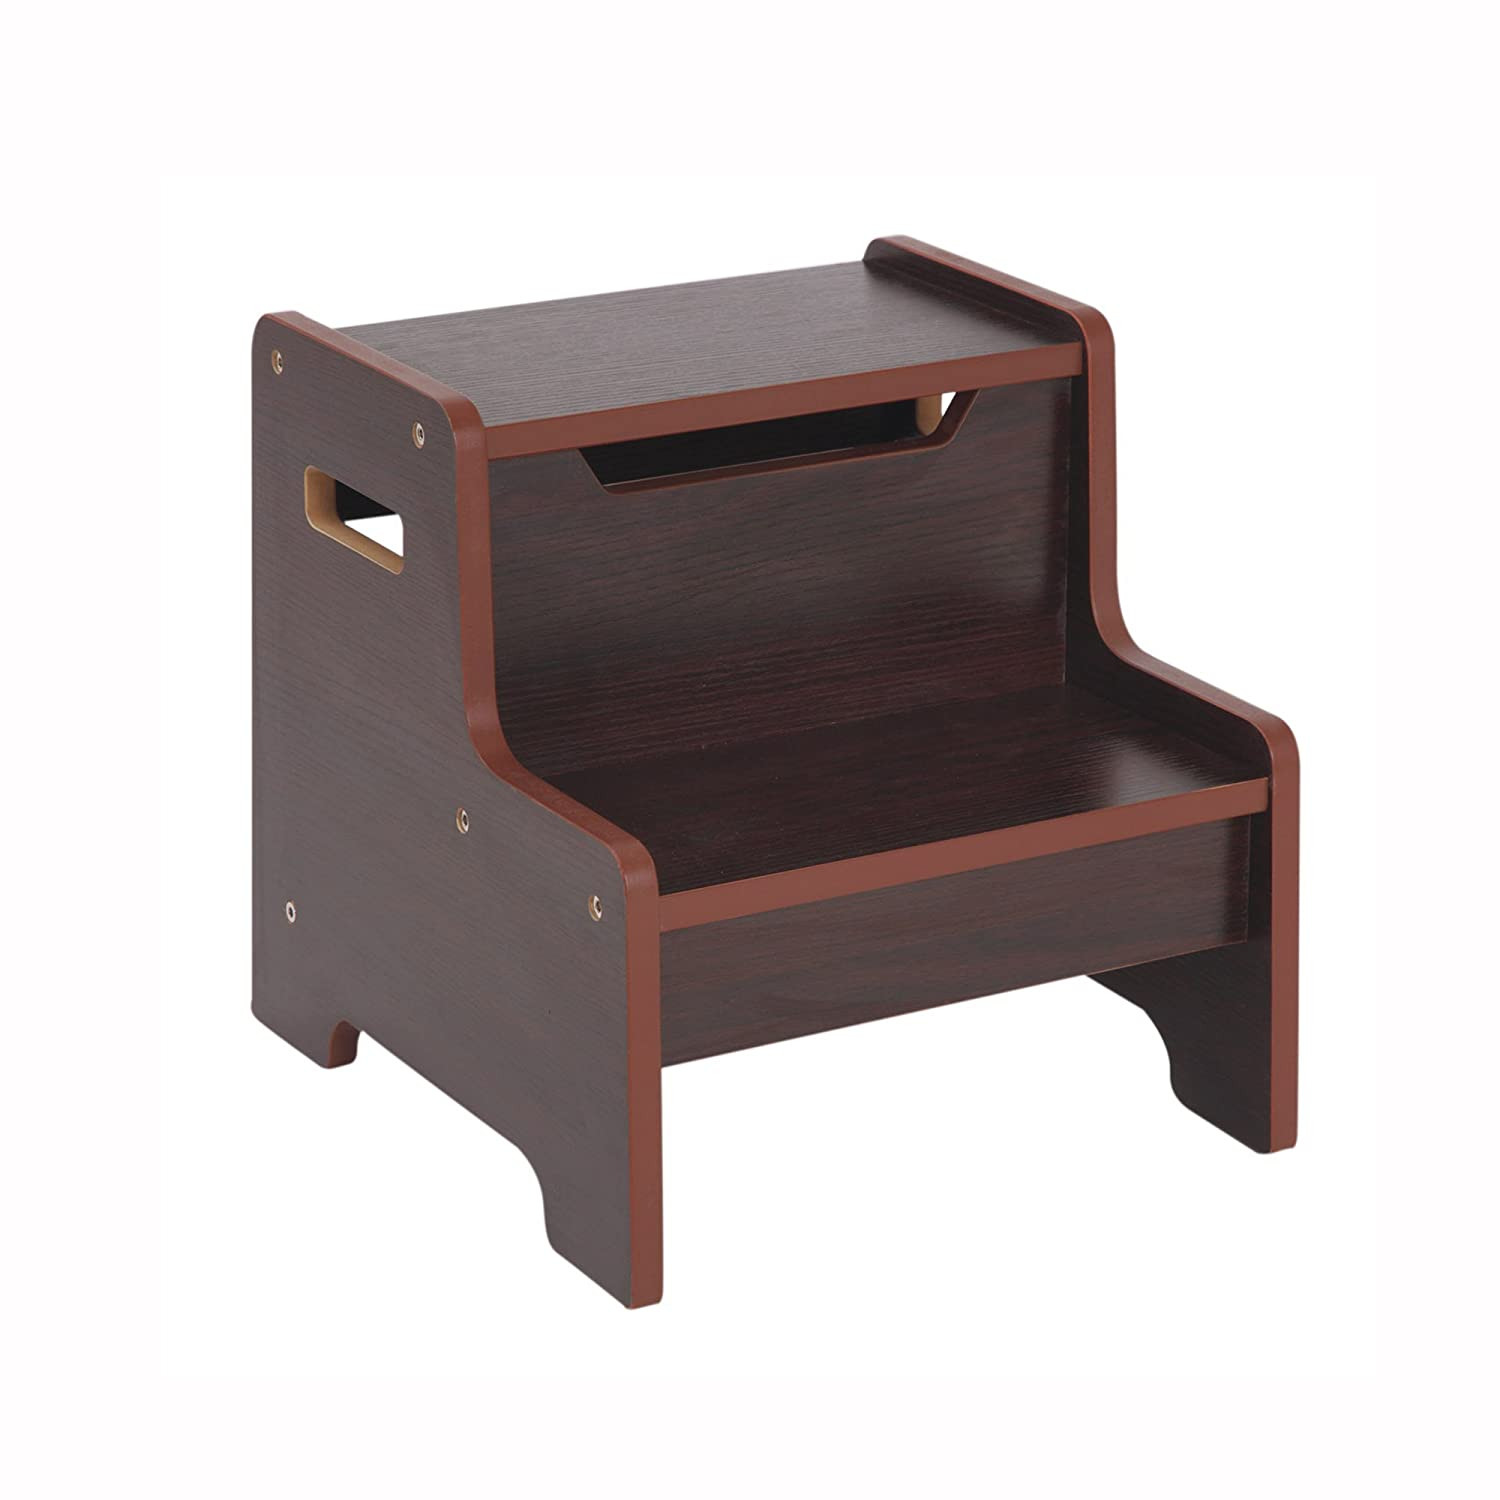 Awesome Guidecraft Expressions Step Stool Step Up Kids Furniture Espresso Dark Cherry Camellatalisay Diy Chair Ideas Camellatalisaycom